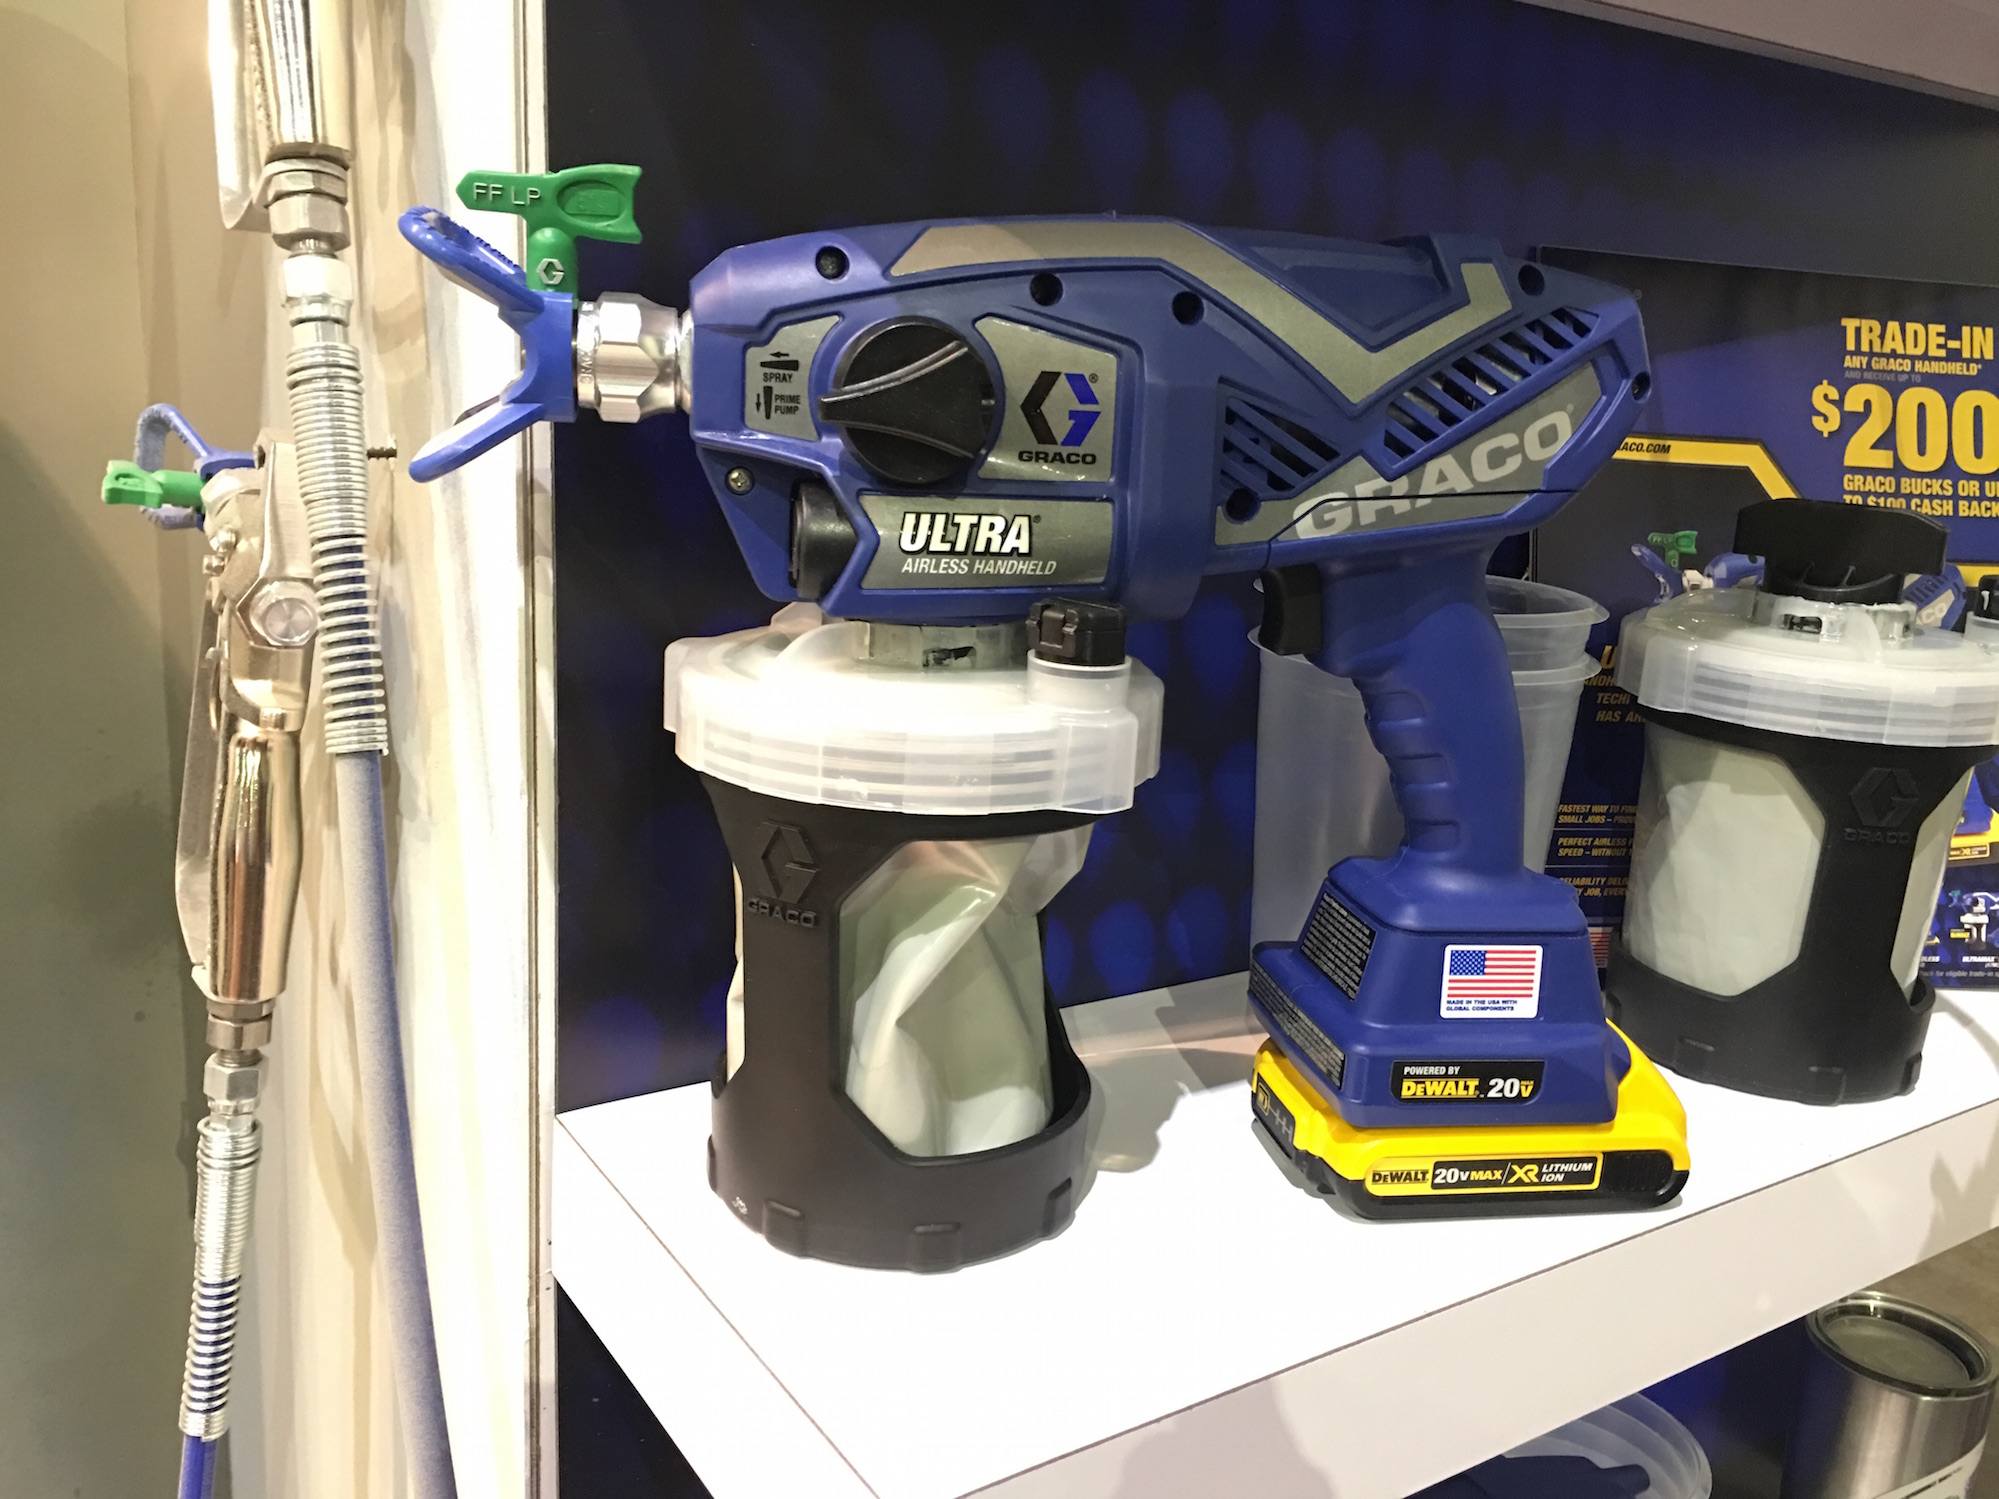 Graco Ultra Airless Cordless Sprayer Tools Of The Trade